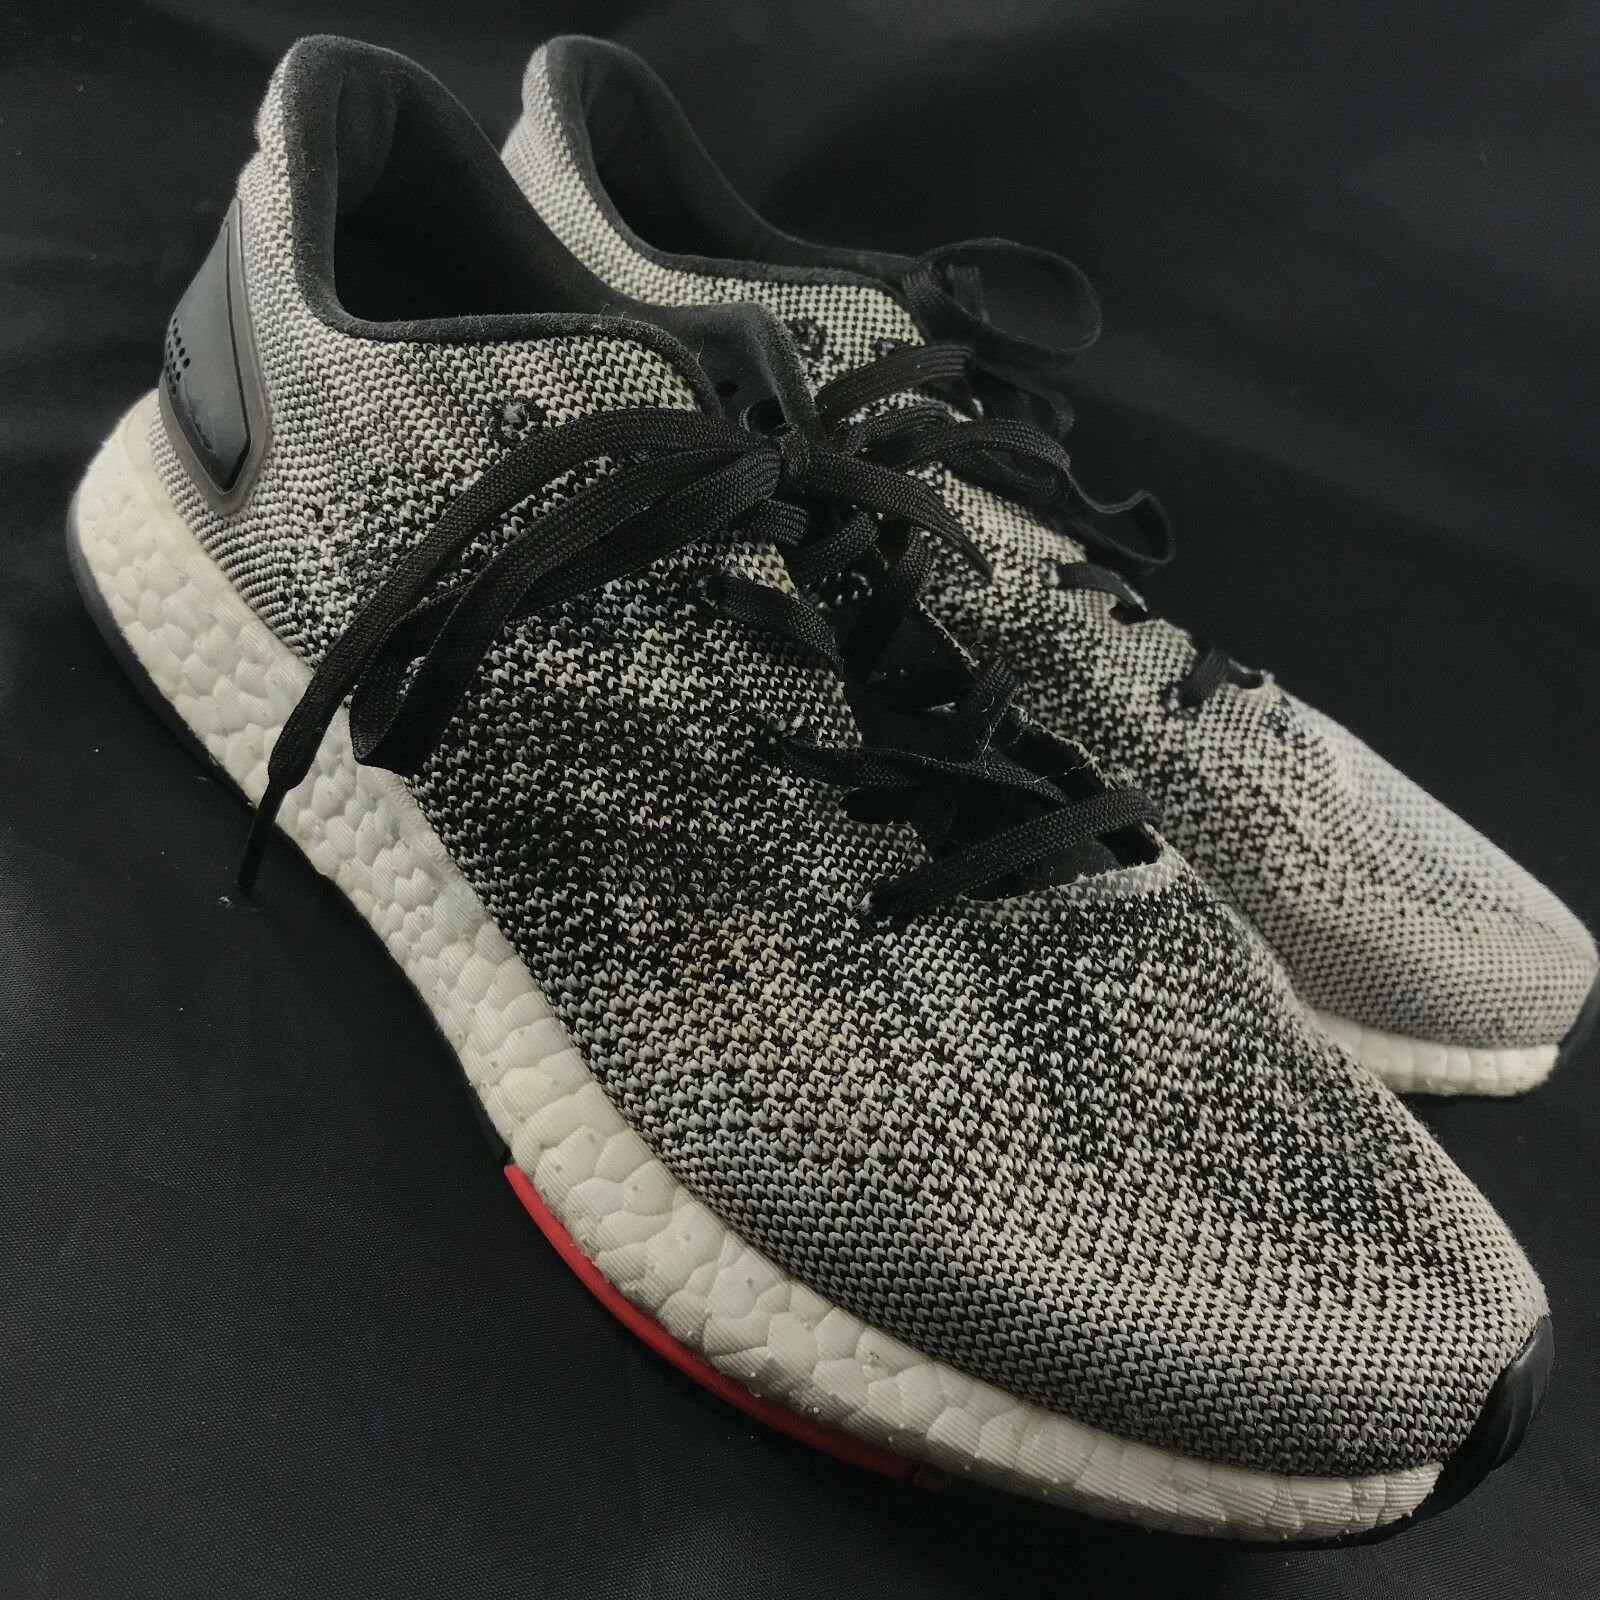 Men's Adidas PureBoost DPR Running Shoes Sz 8 Core Black White / White Black S80993 c62a05